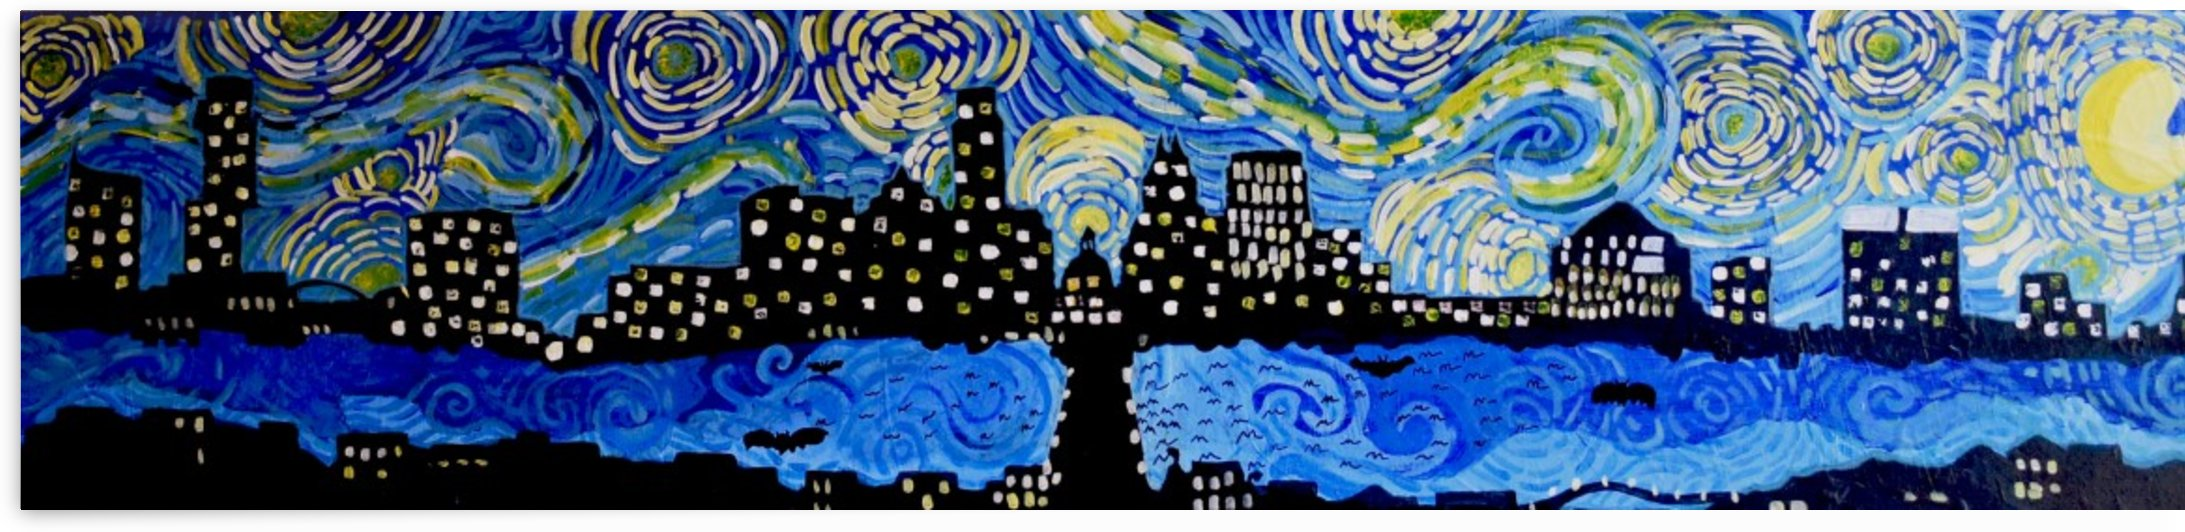 Austin Starry Night. Tala S. by The Arc of the Capital Area